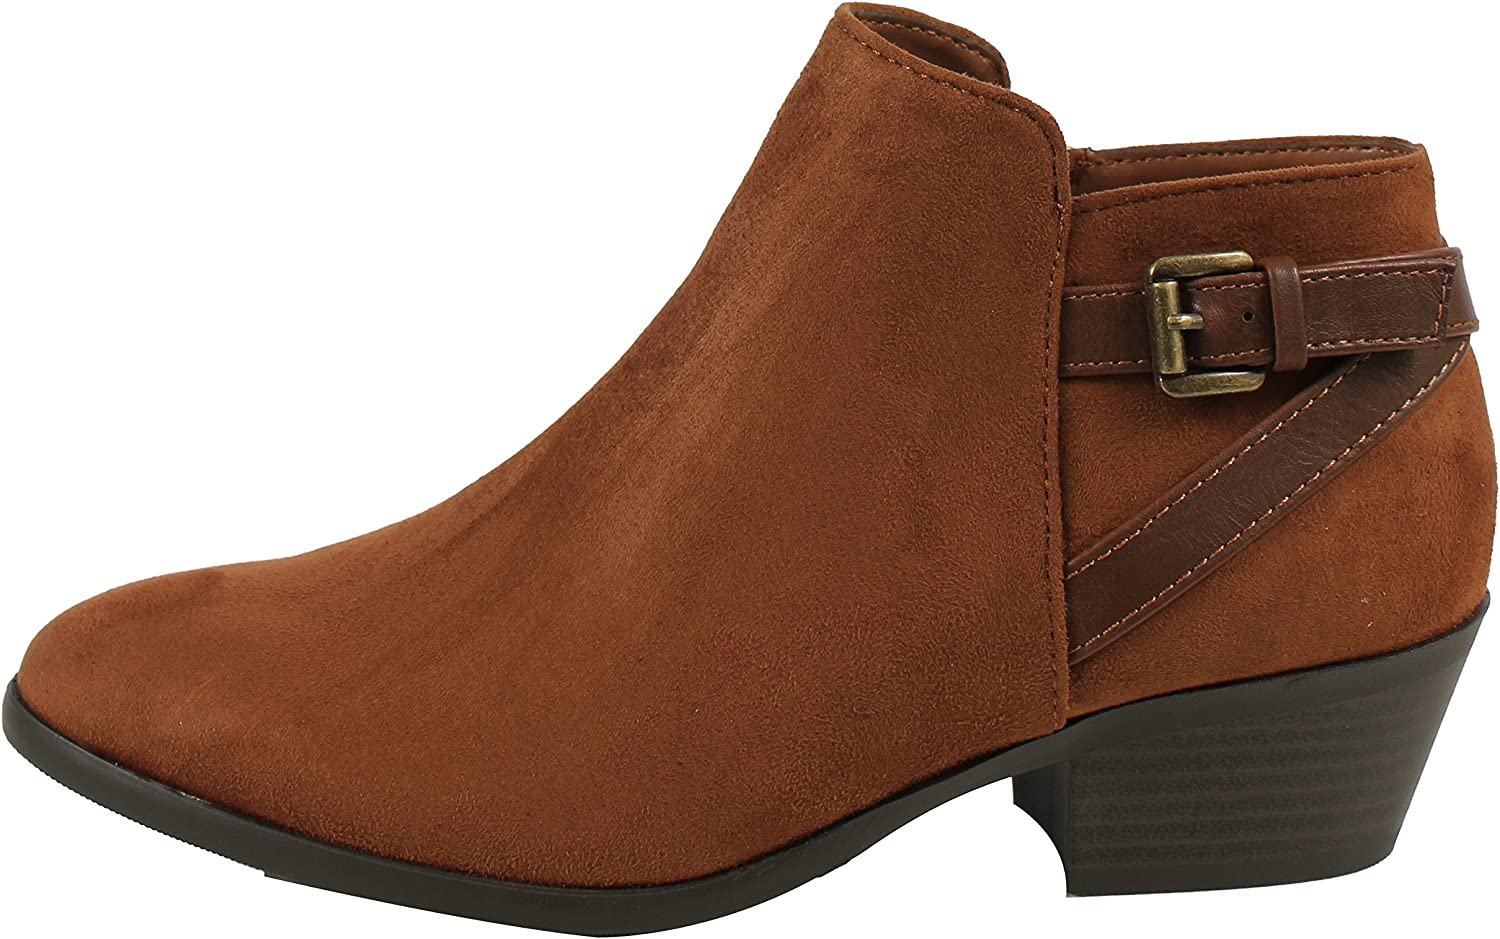 Soda Women's Closed Toe Faux Suede with Faux Leather Buckle Strap Chunky Stacked Heel Ankle Boot